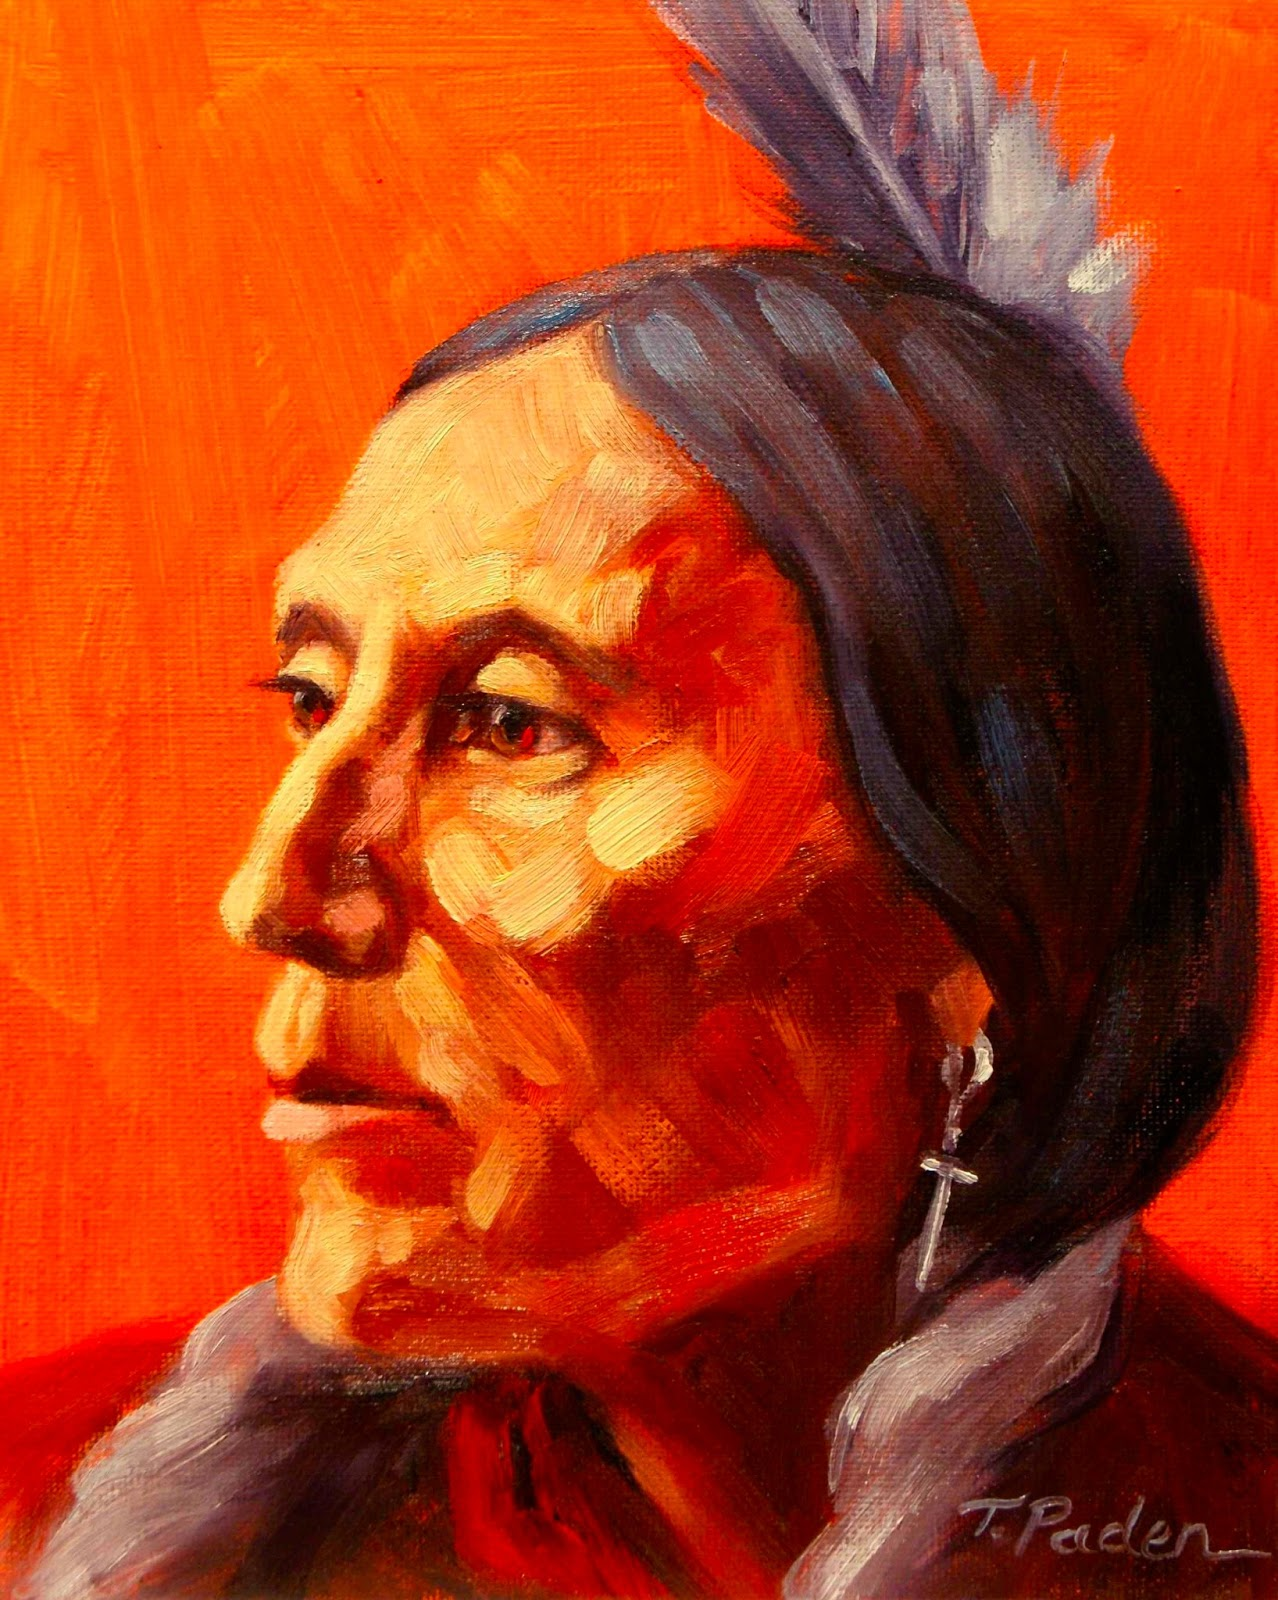 Oil Paintings of Native Americans http://paintingsbytheresapaden.blogspot.com/2013/02/native-american-study-3-by-theresa.html